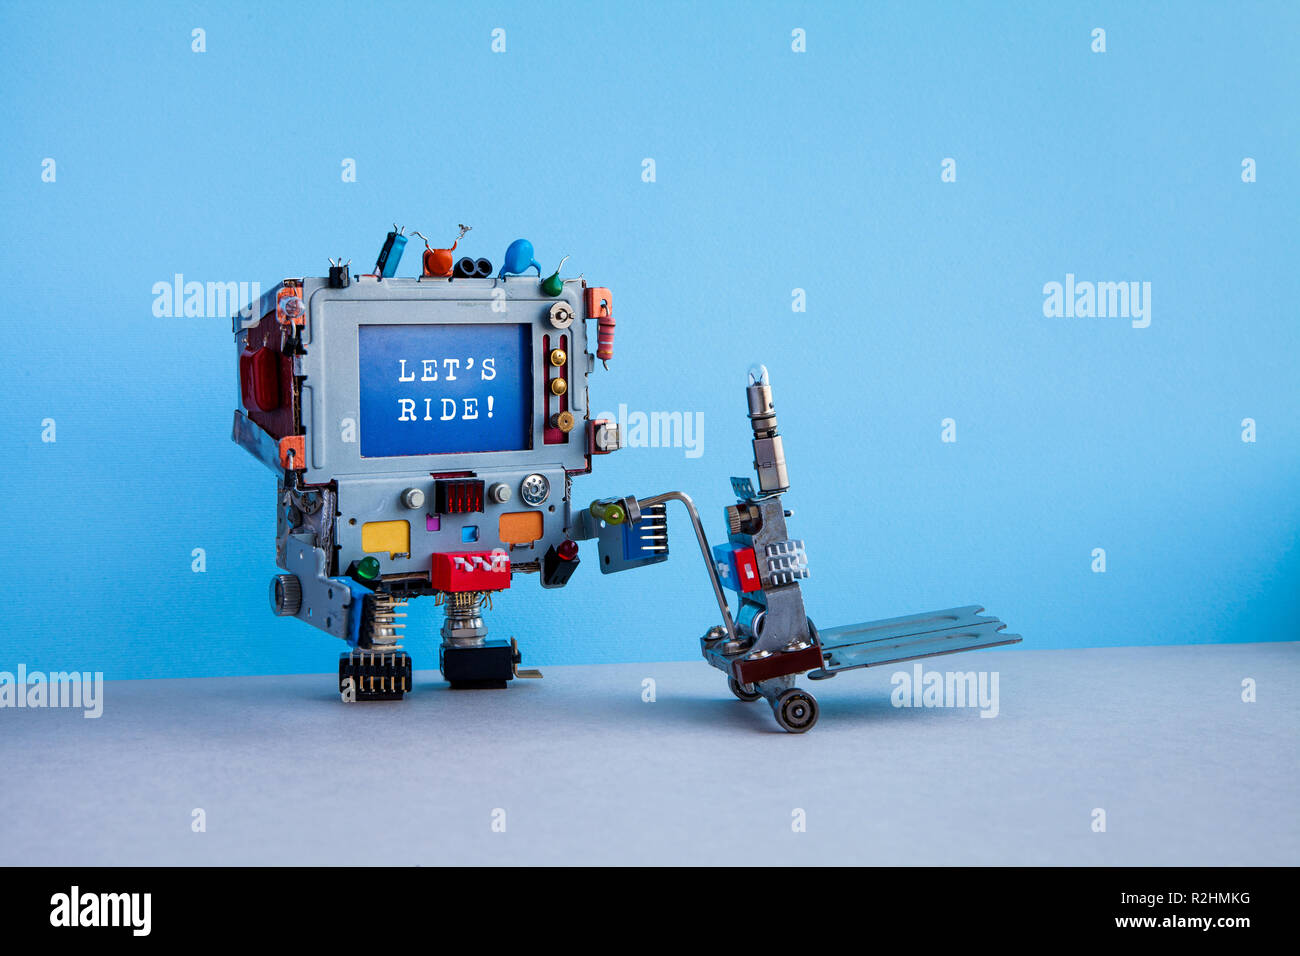 Robotic courier computer and message Lets Ride. Delivery service automation logistic concept. Robot moving pushcart mechanism. Blue wall, gray floor background. copy space. - Stock Image